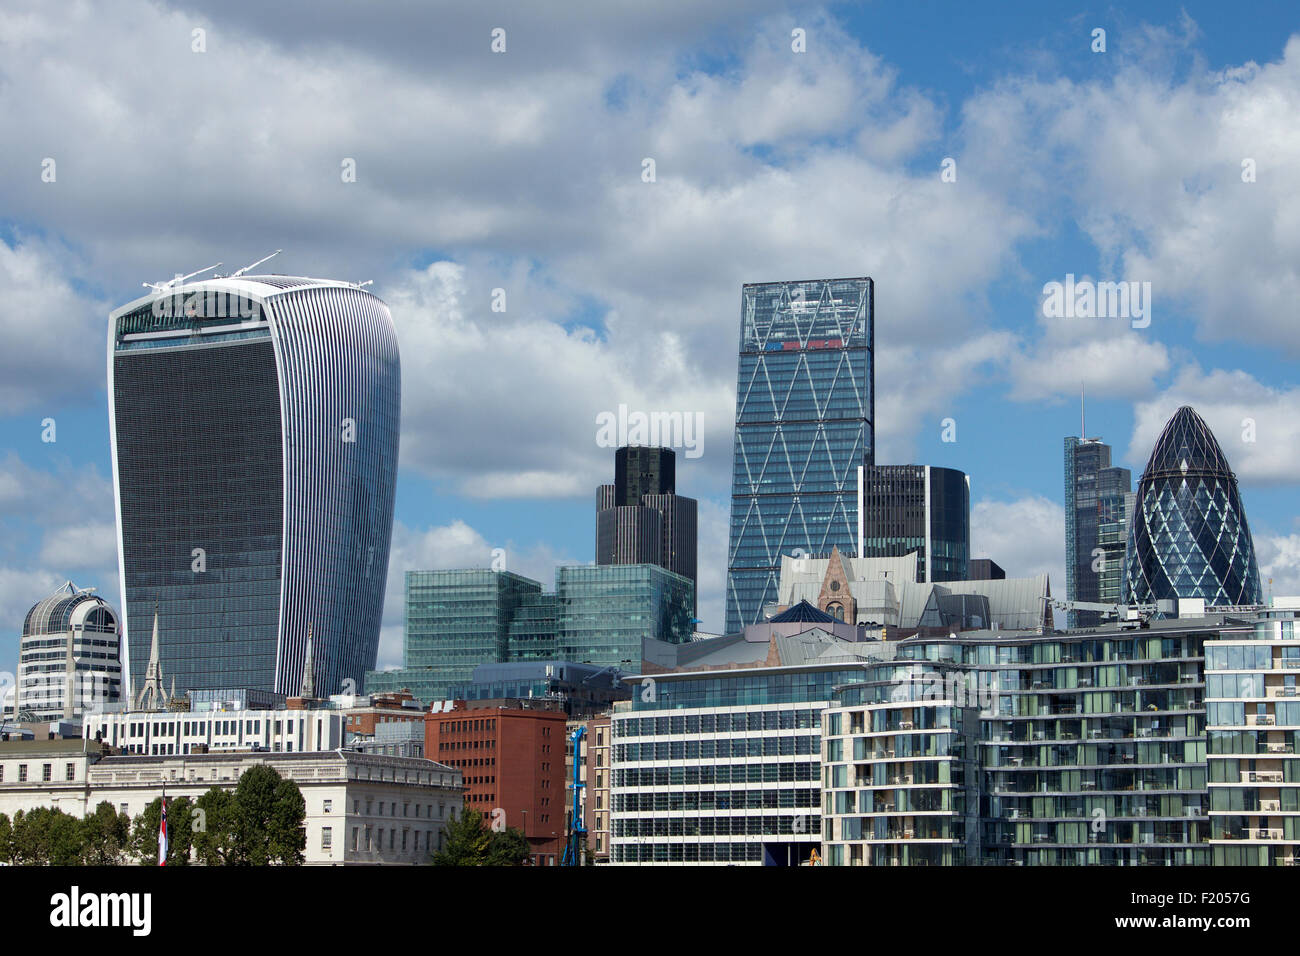 The City of London skyline including the 'Walkie Talkie', the 'Cheesegrater' and the 'Gherkin' - Stock Image